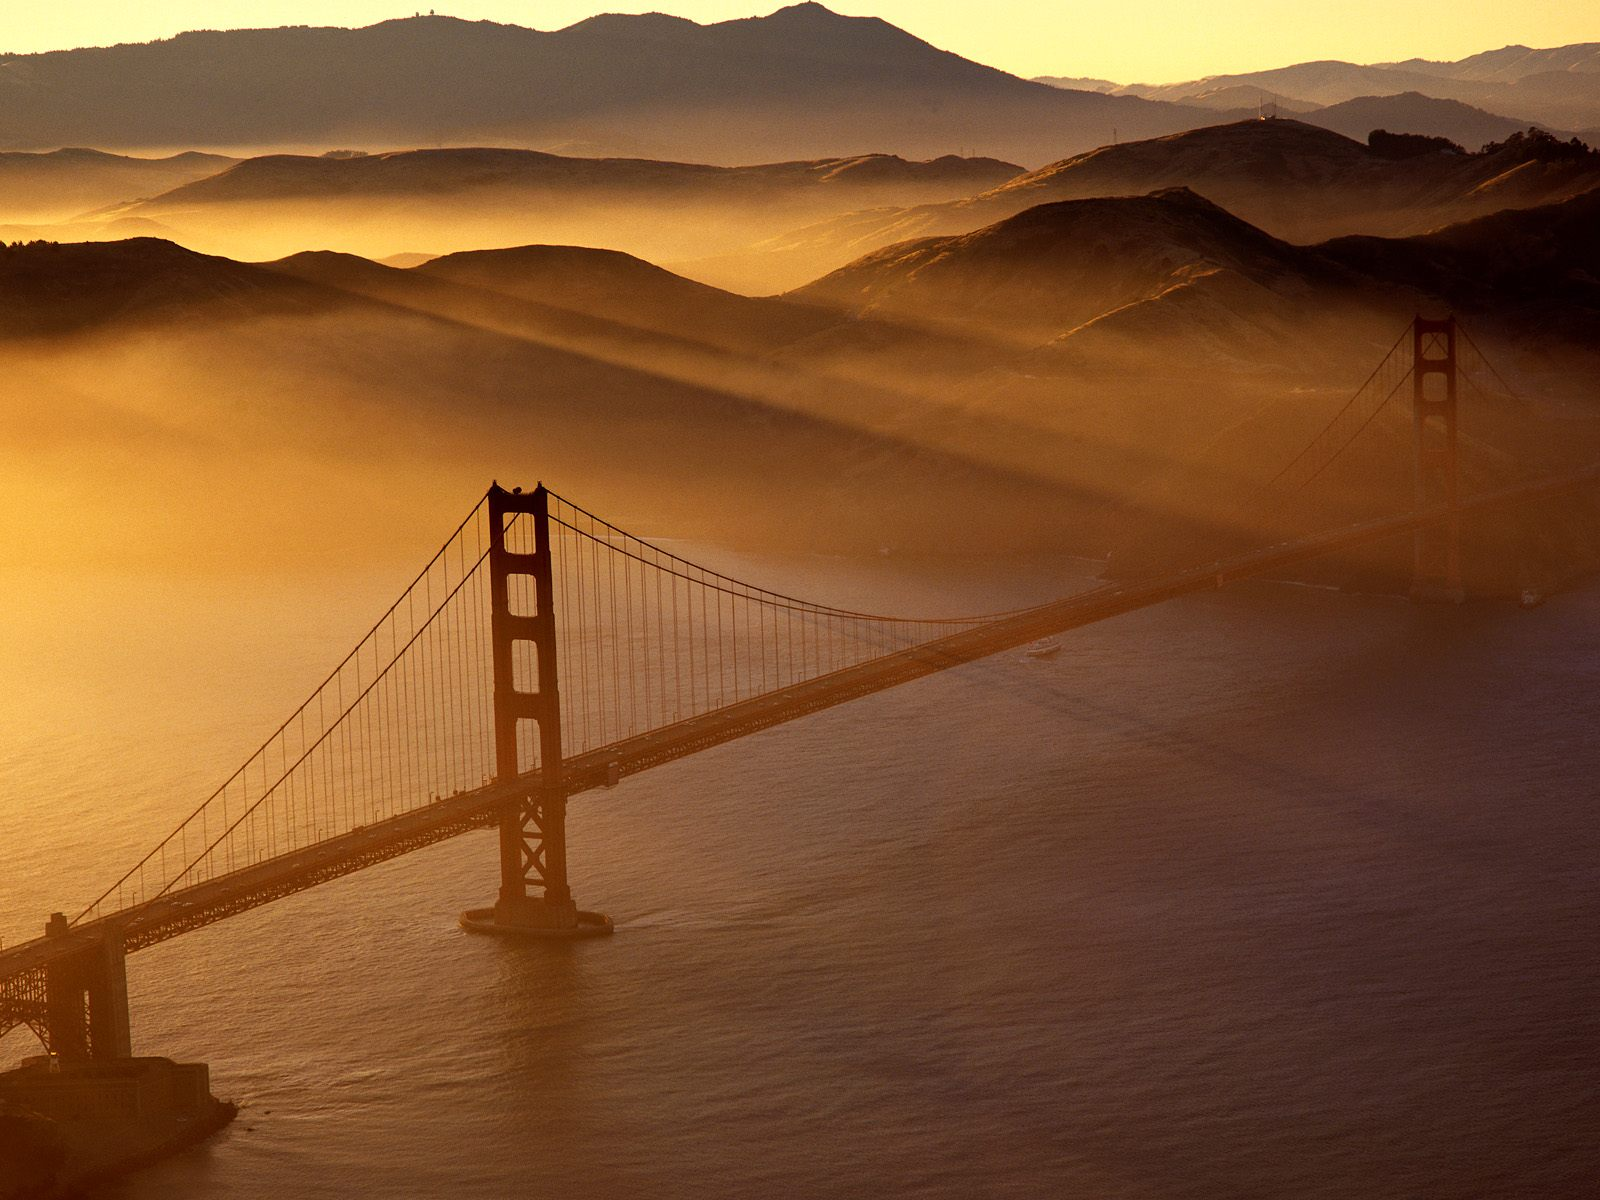 Golden Gate Bridge California 1600 x 1200